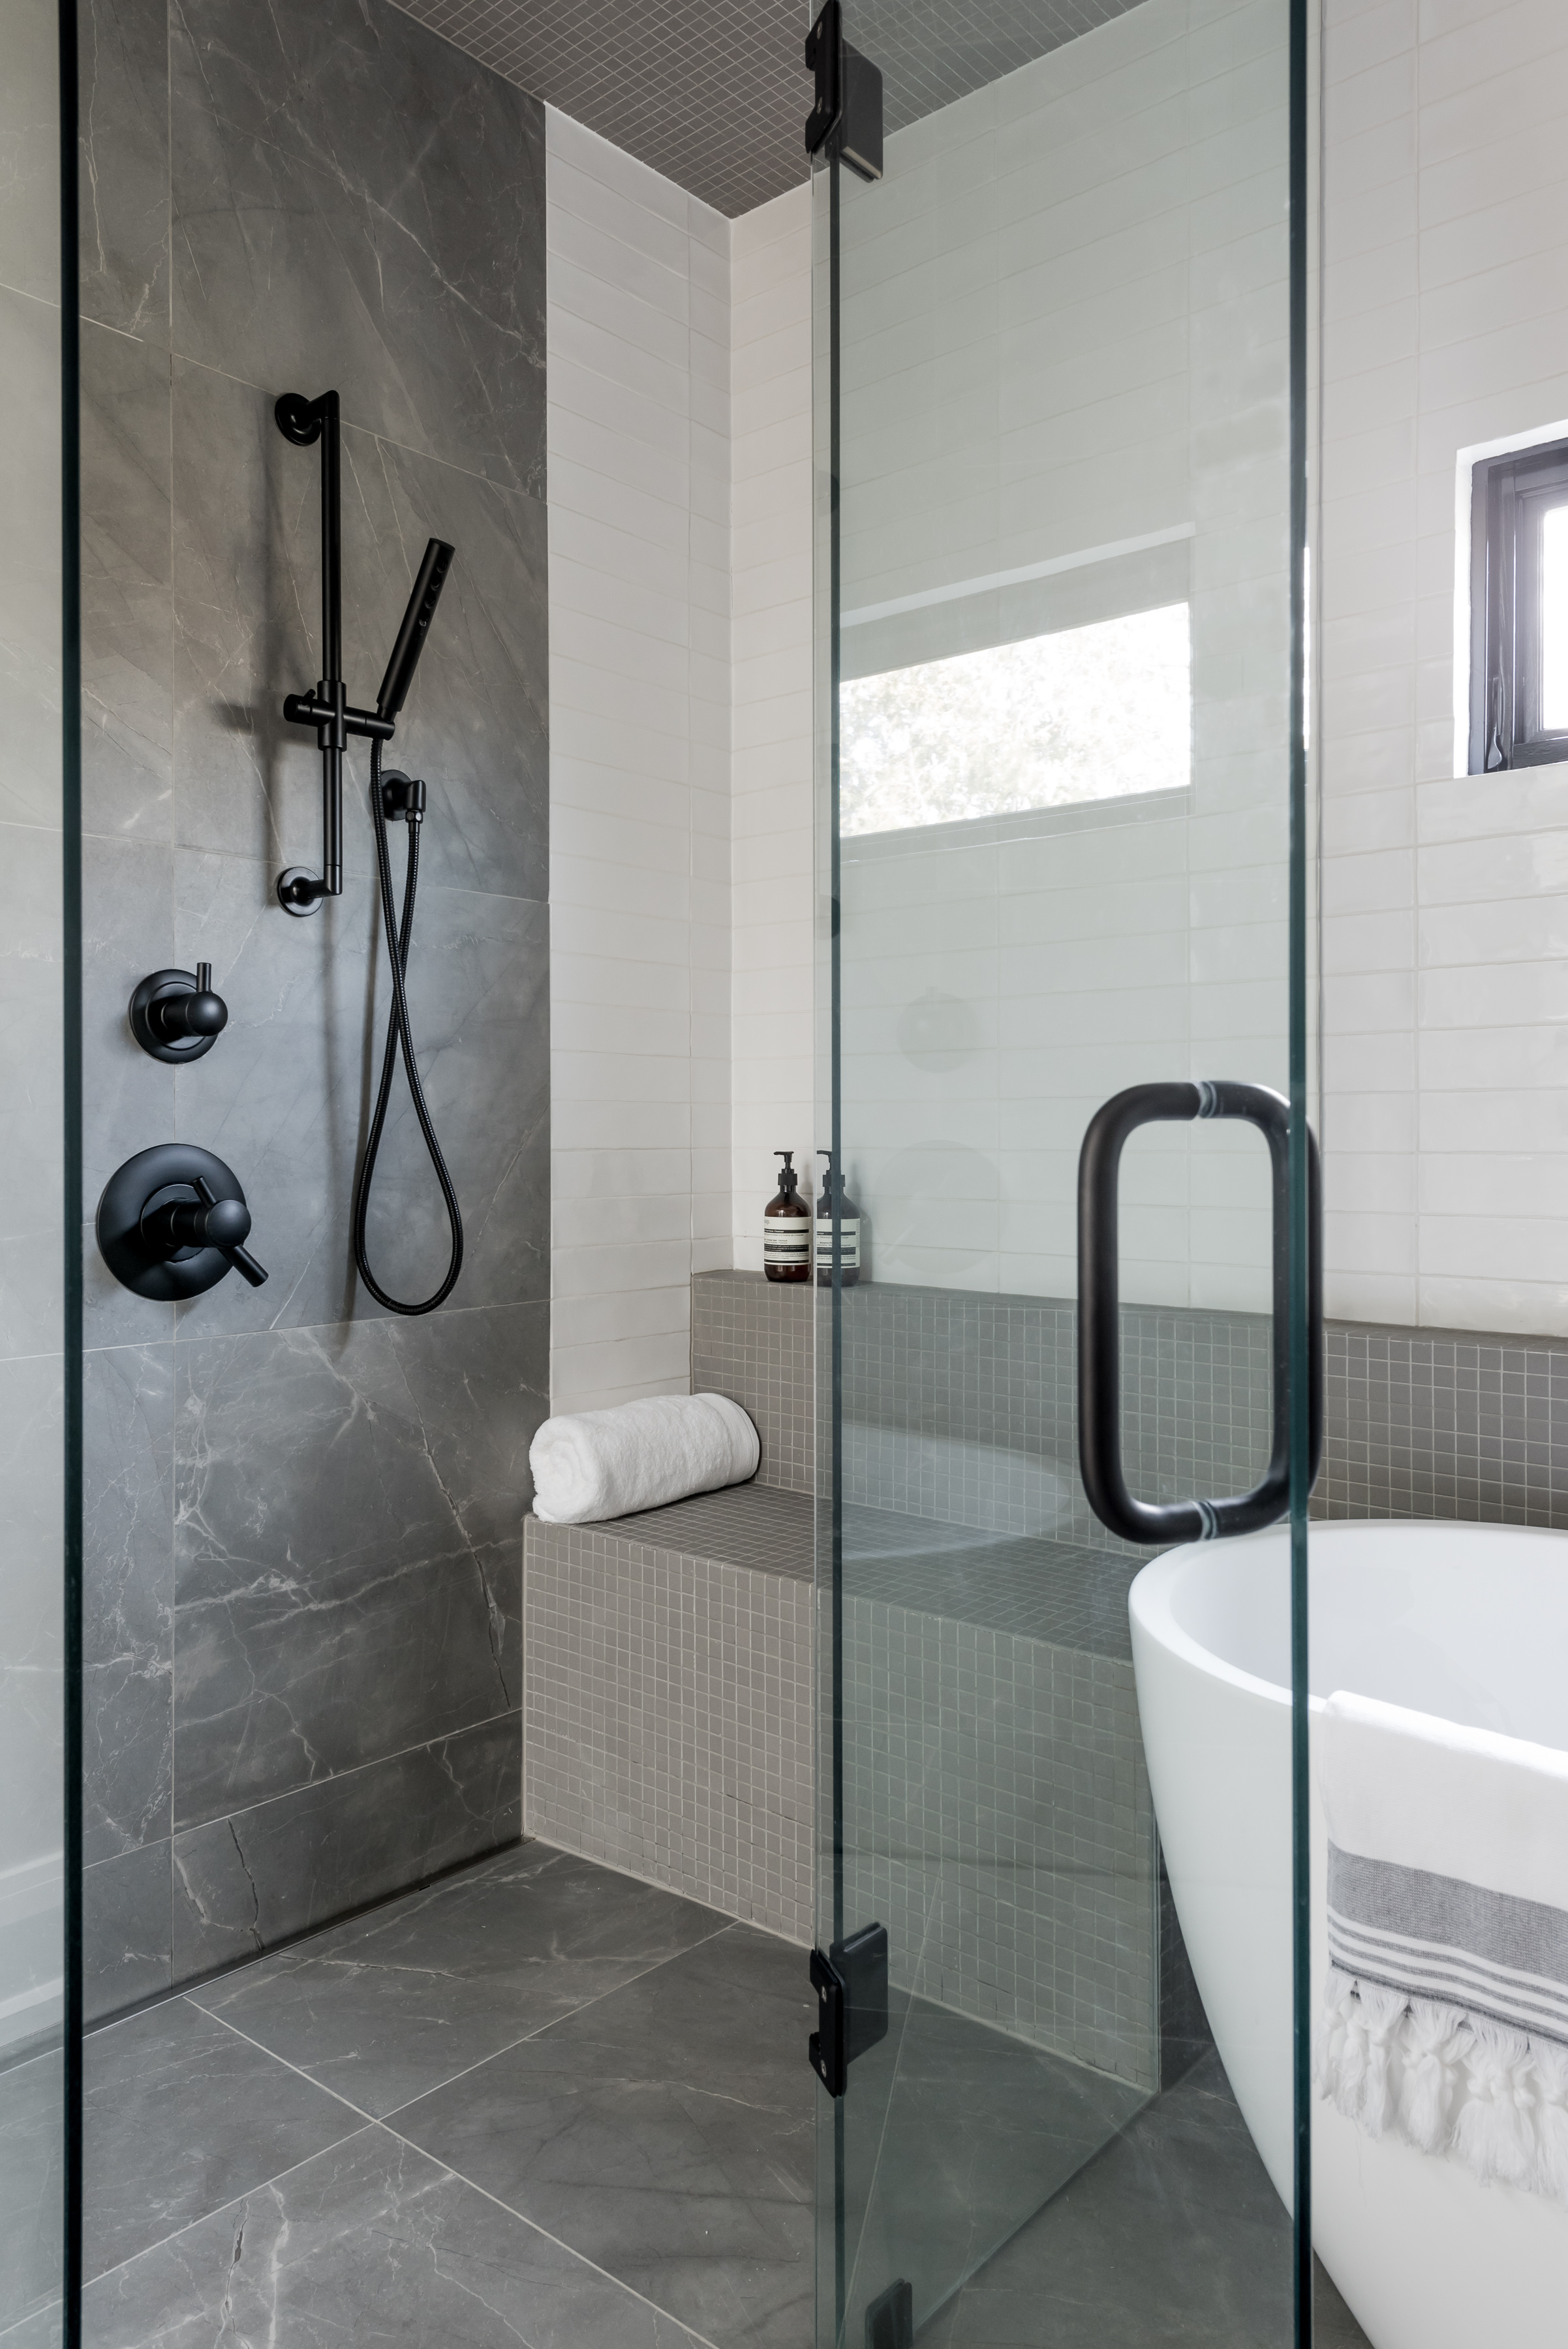 Bathroom_4-166.jpg